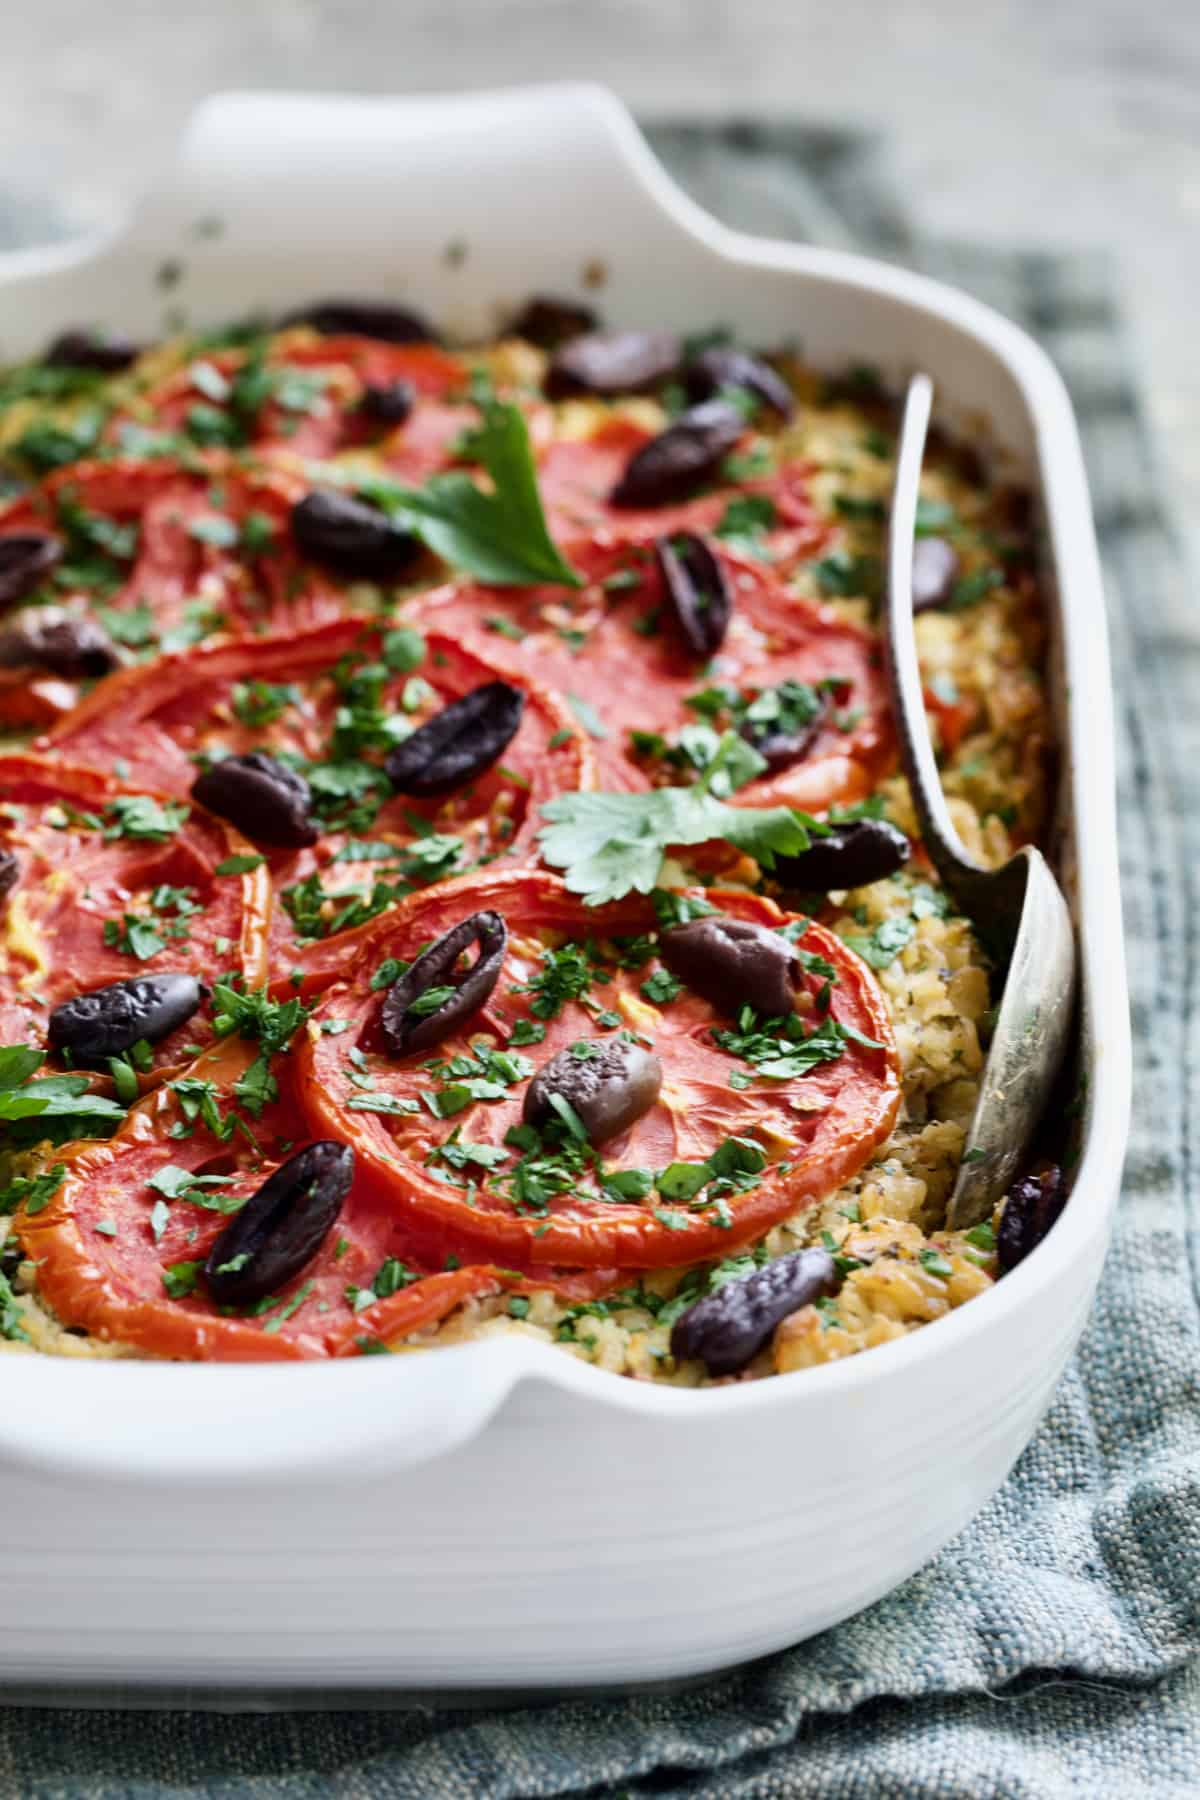 Greek Brown Rice and Vegetable Casserole in white baking dish with serving spoon on blue napkin.